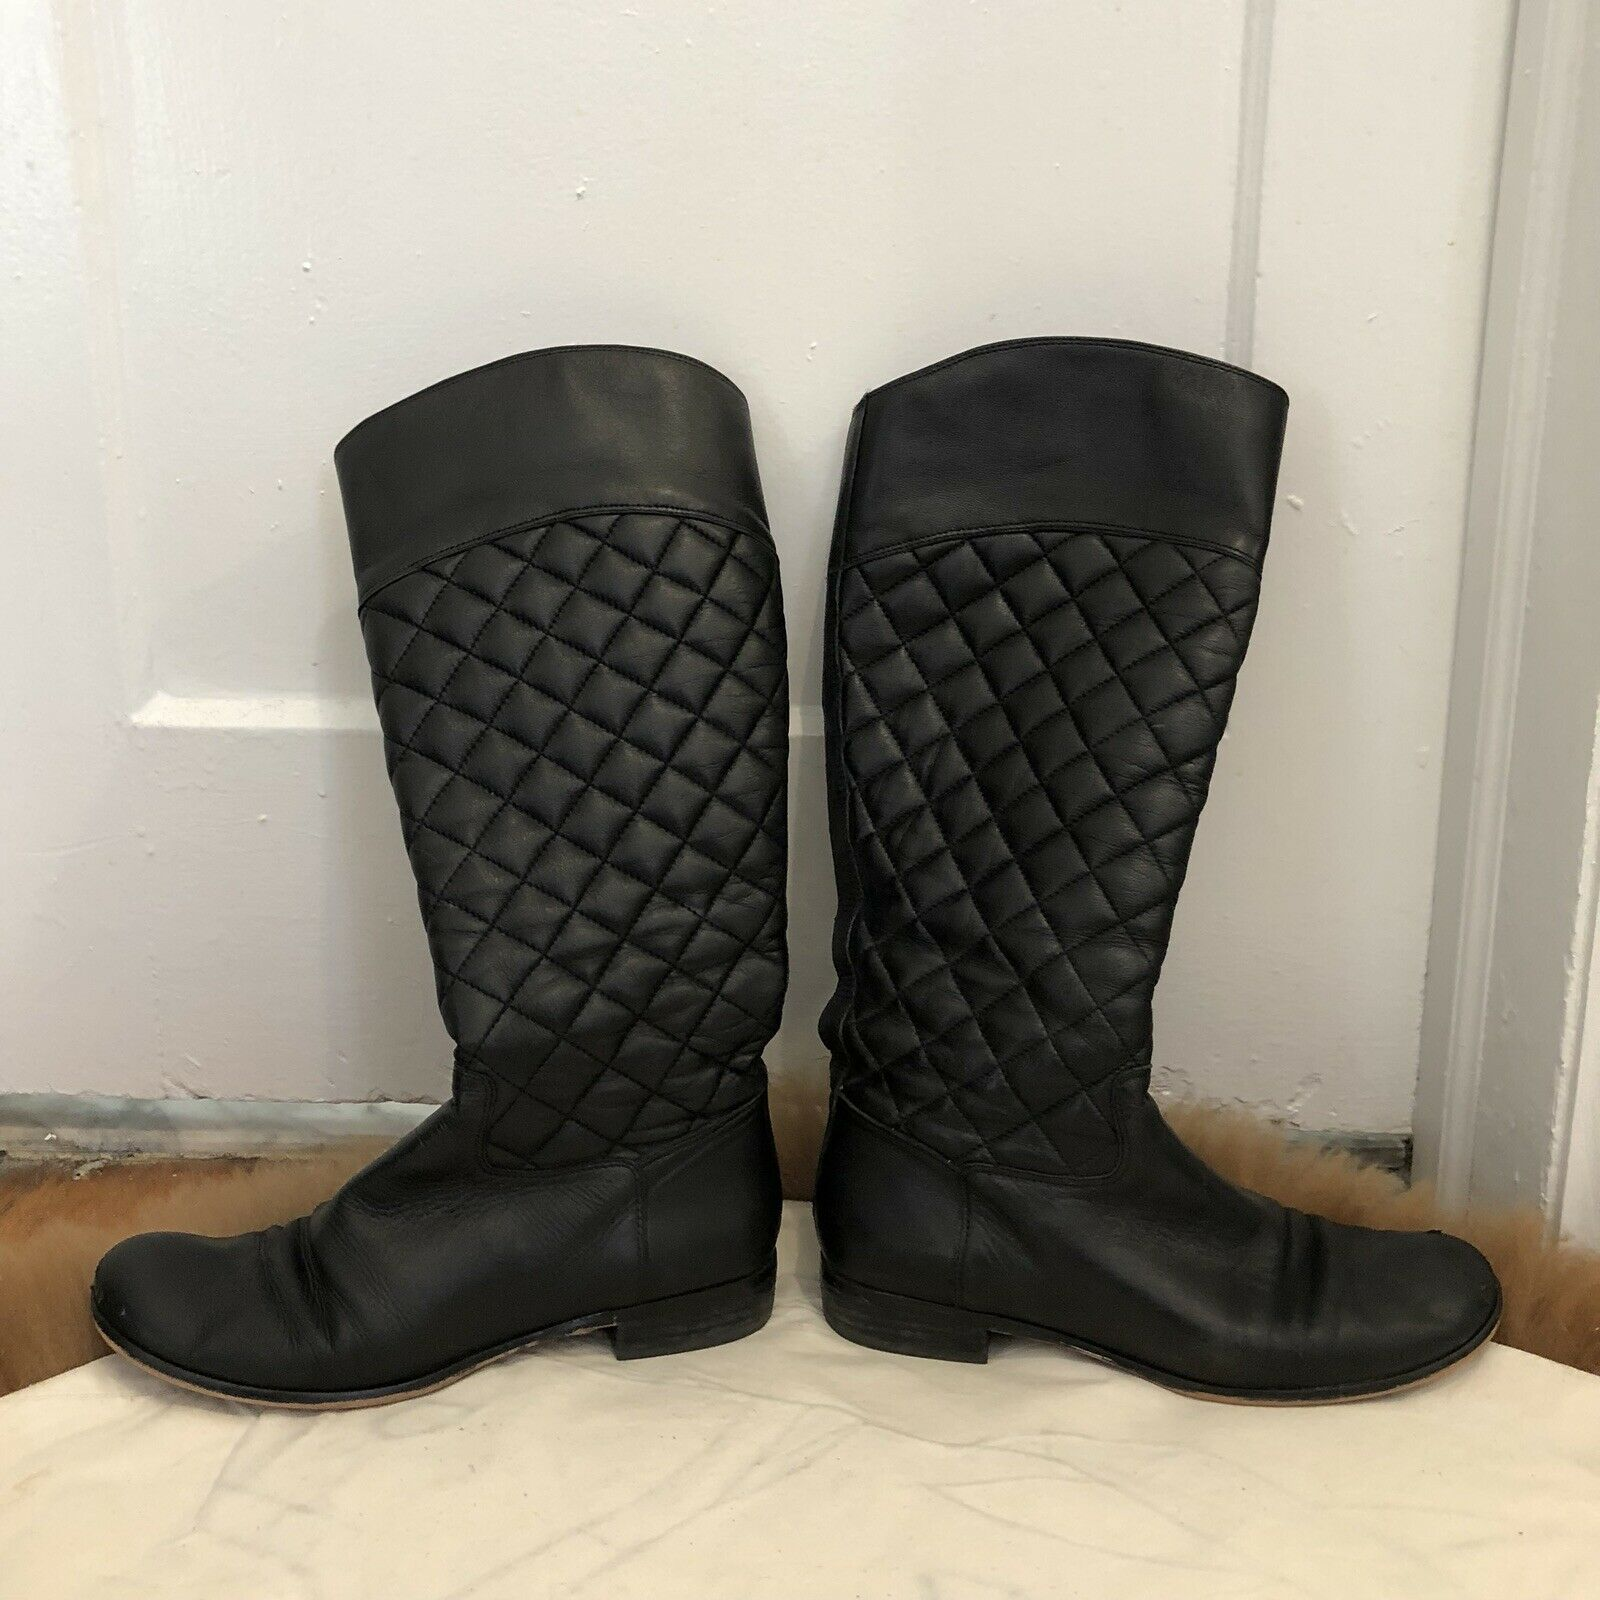 Corso Como black quilted leather womens ridind boots sz 8